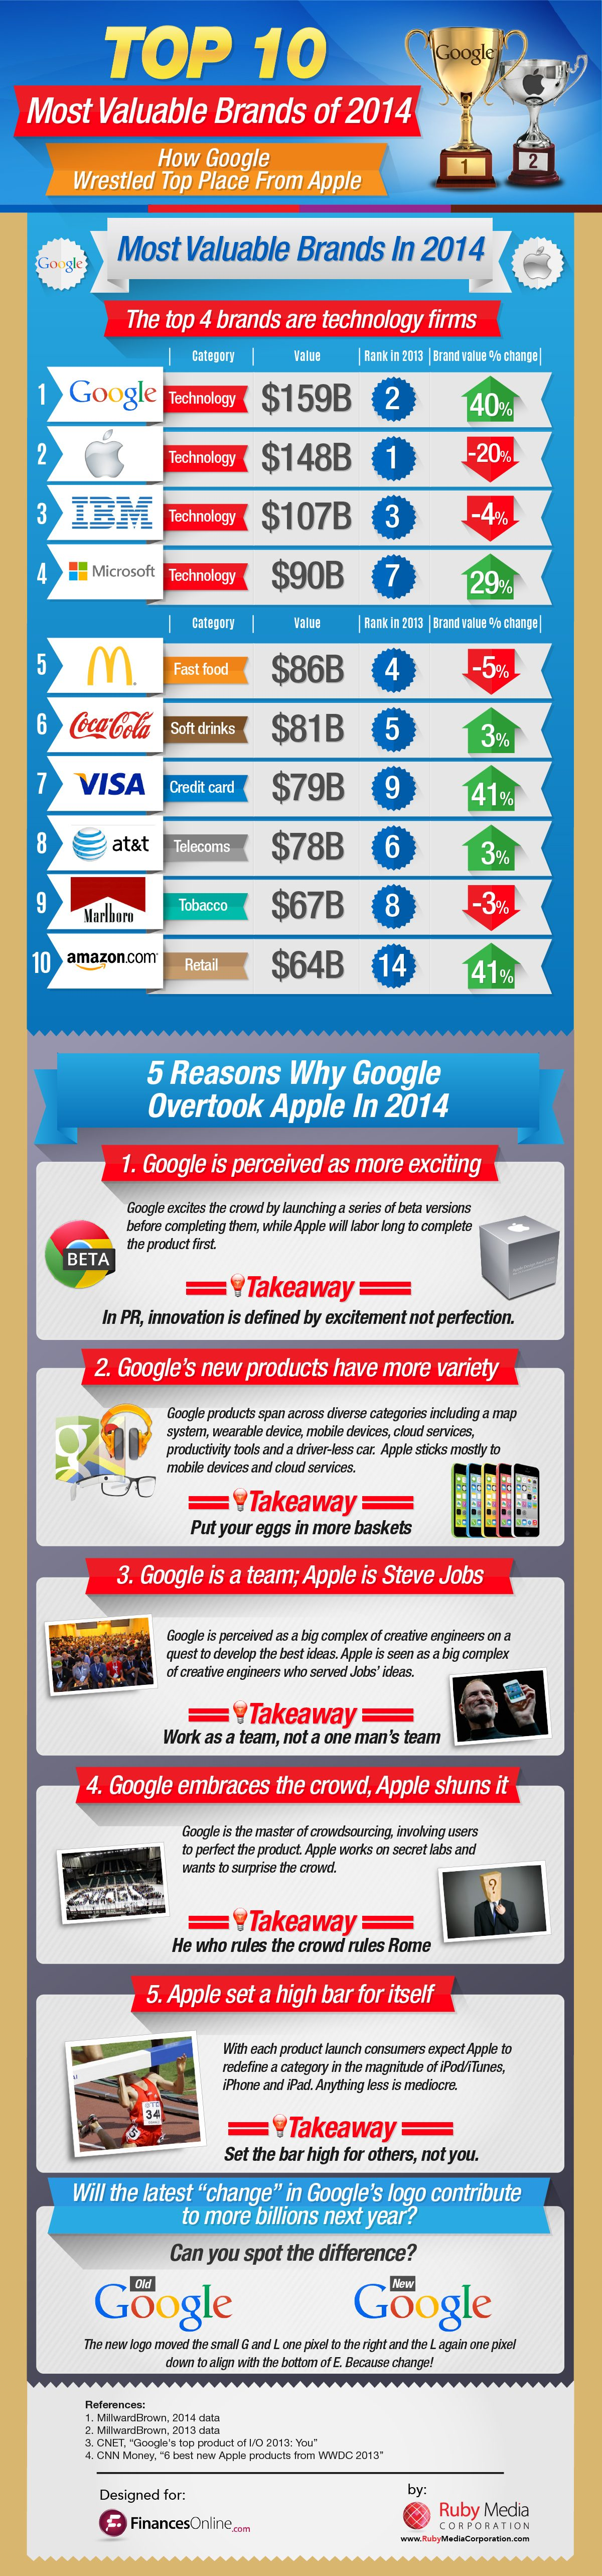 Top 10 Global Brands of 2014: How Apple Lost The Crown To Google